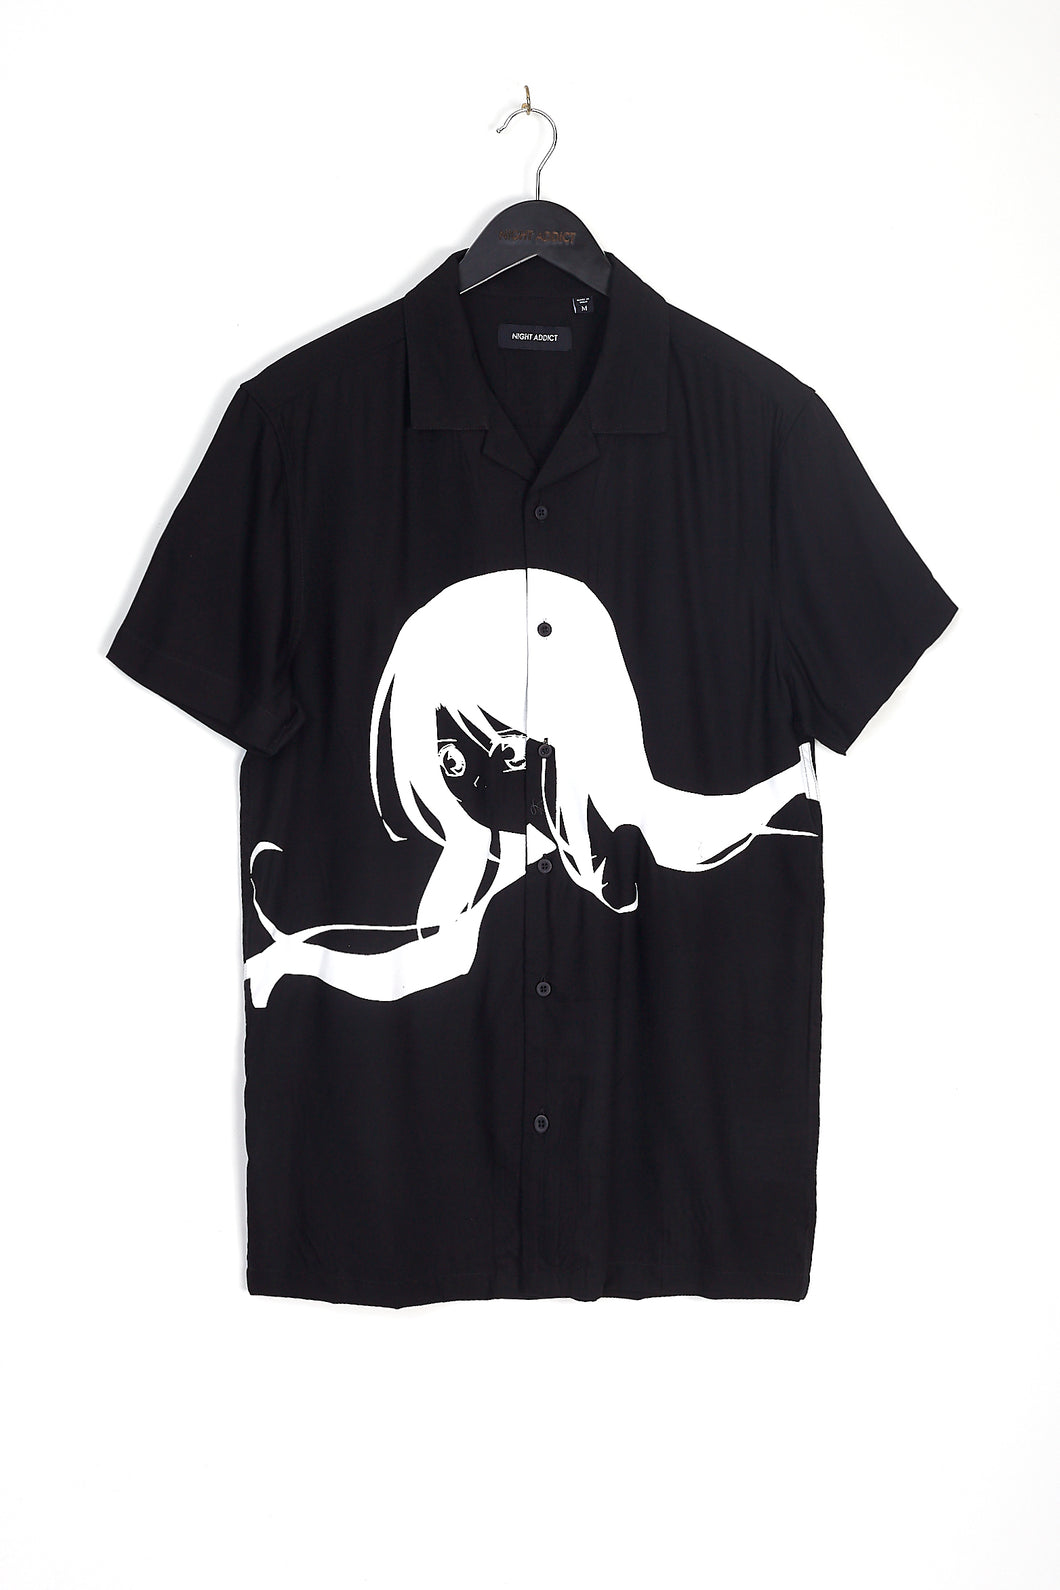 NIGHT ADDICT OVERSIZED ANIME PRINT SHIRT